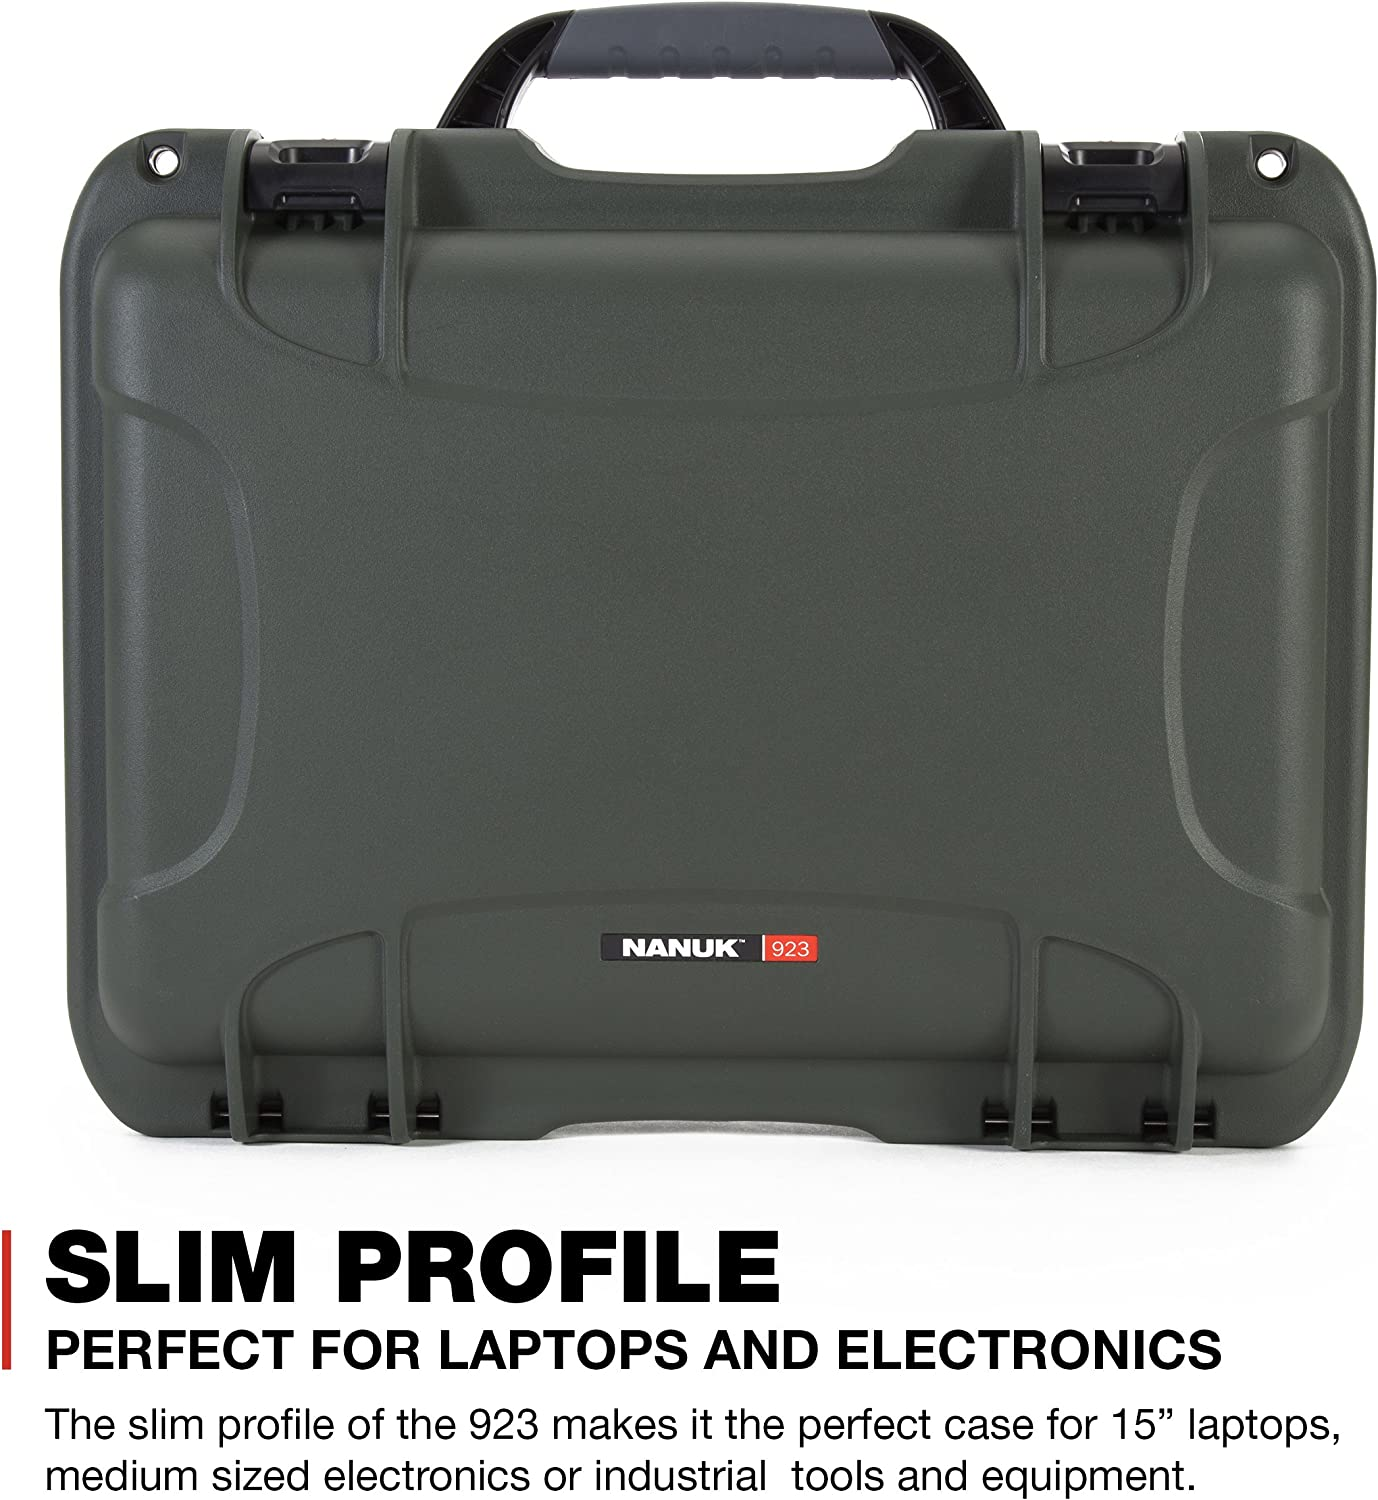 Black Nanuk 923 Waterproof Hard Case with Padded Dividers and Incorporated TSA Approved Travel Lock Latches